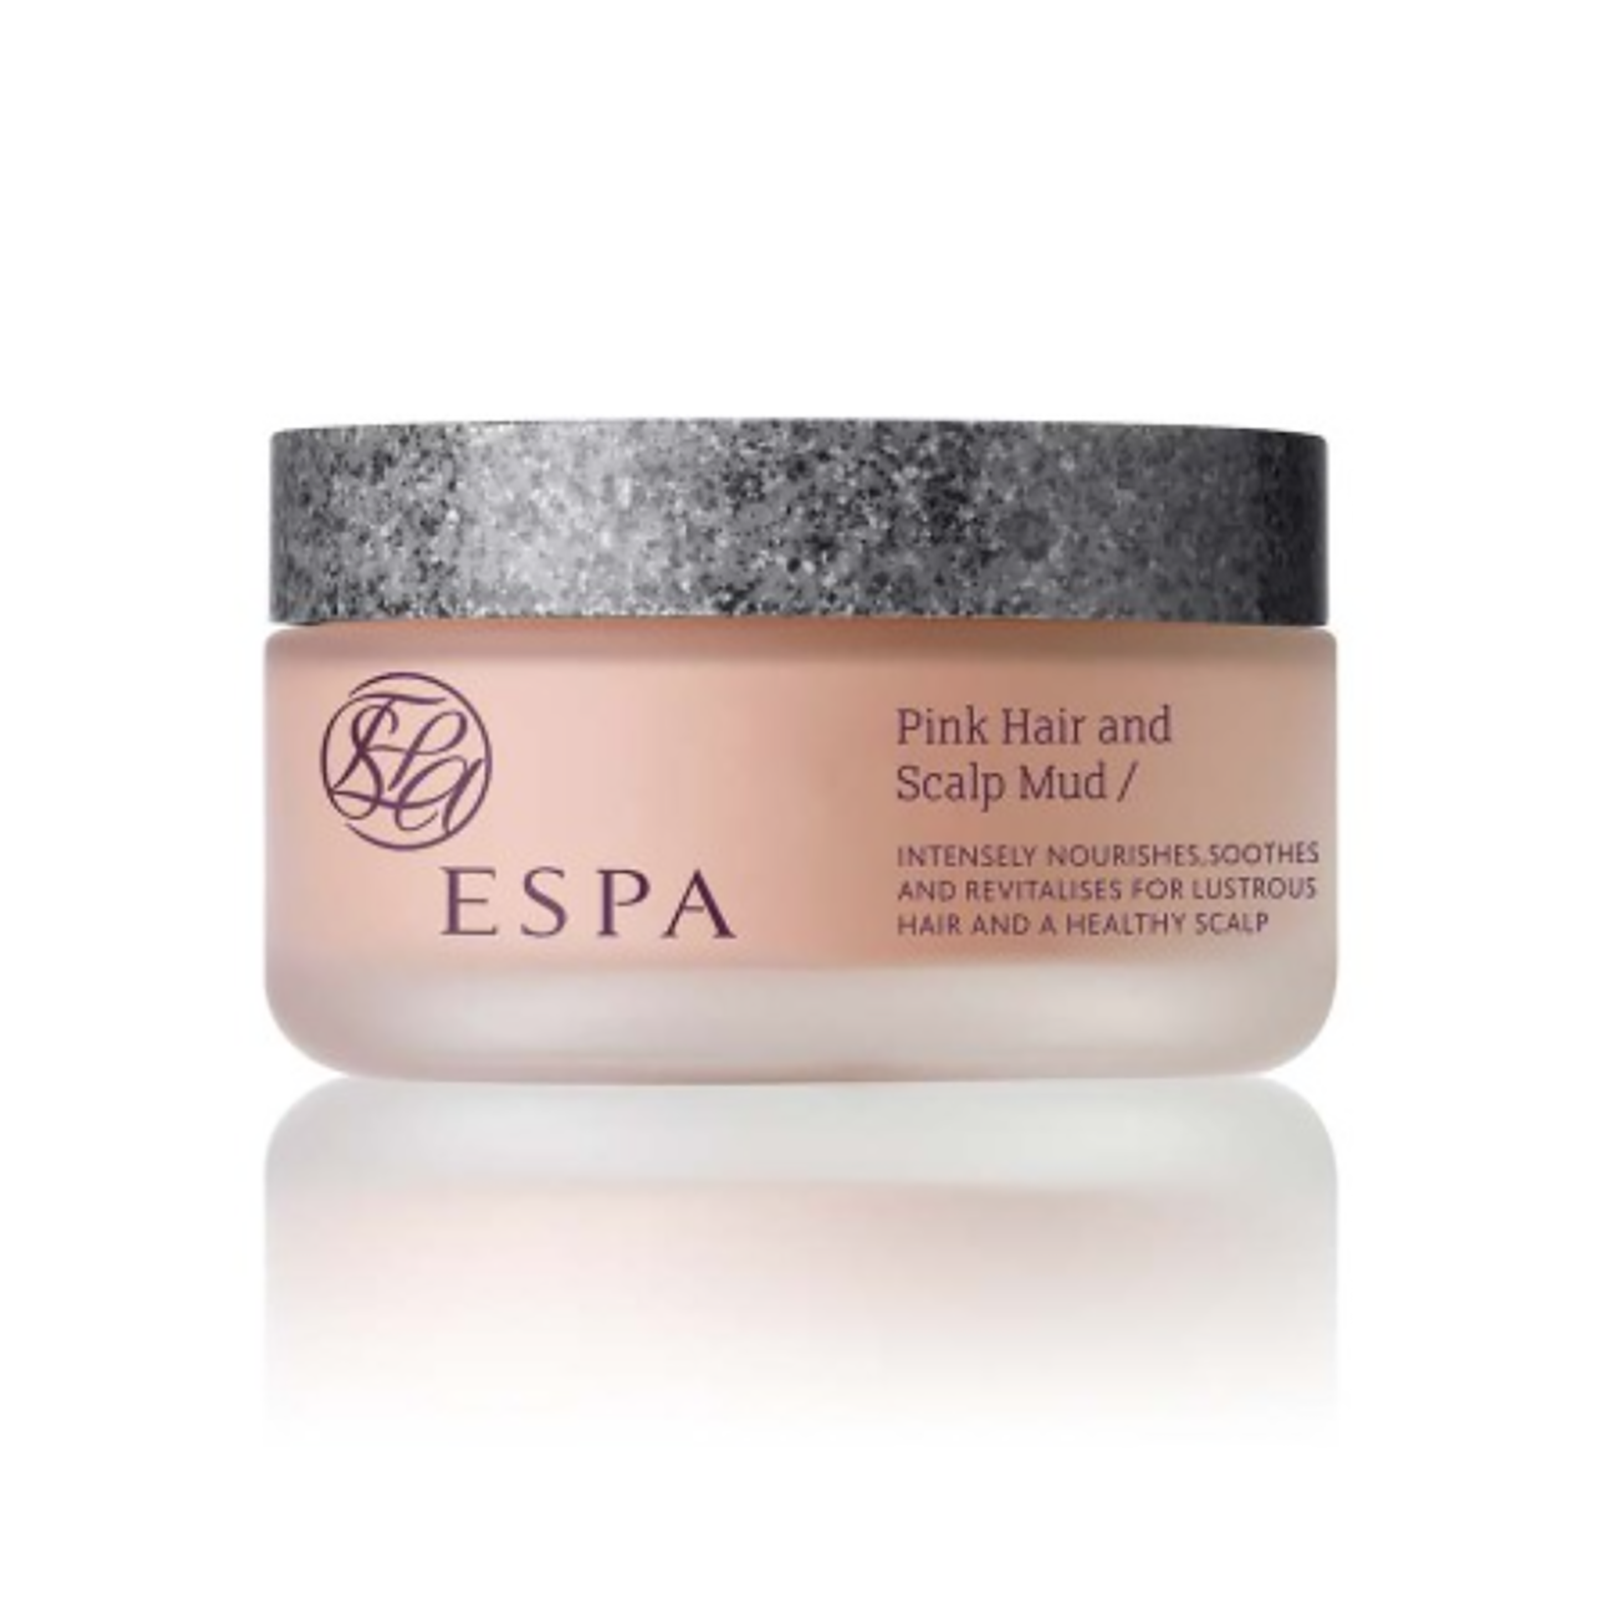 ESPA Pink Hair & Scalp Mud (200ml)